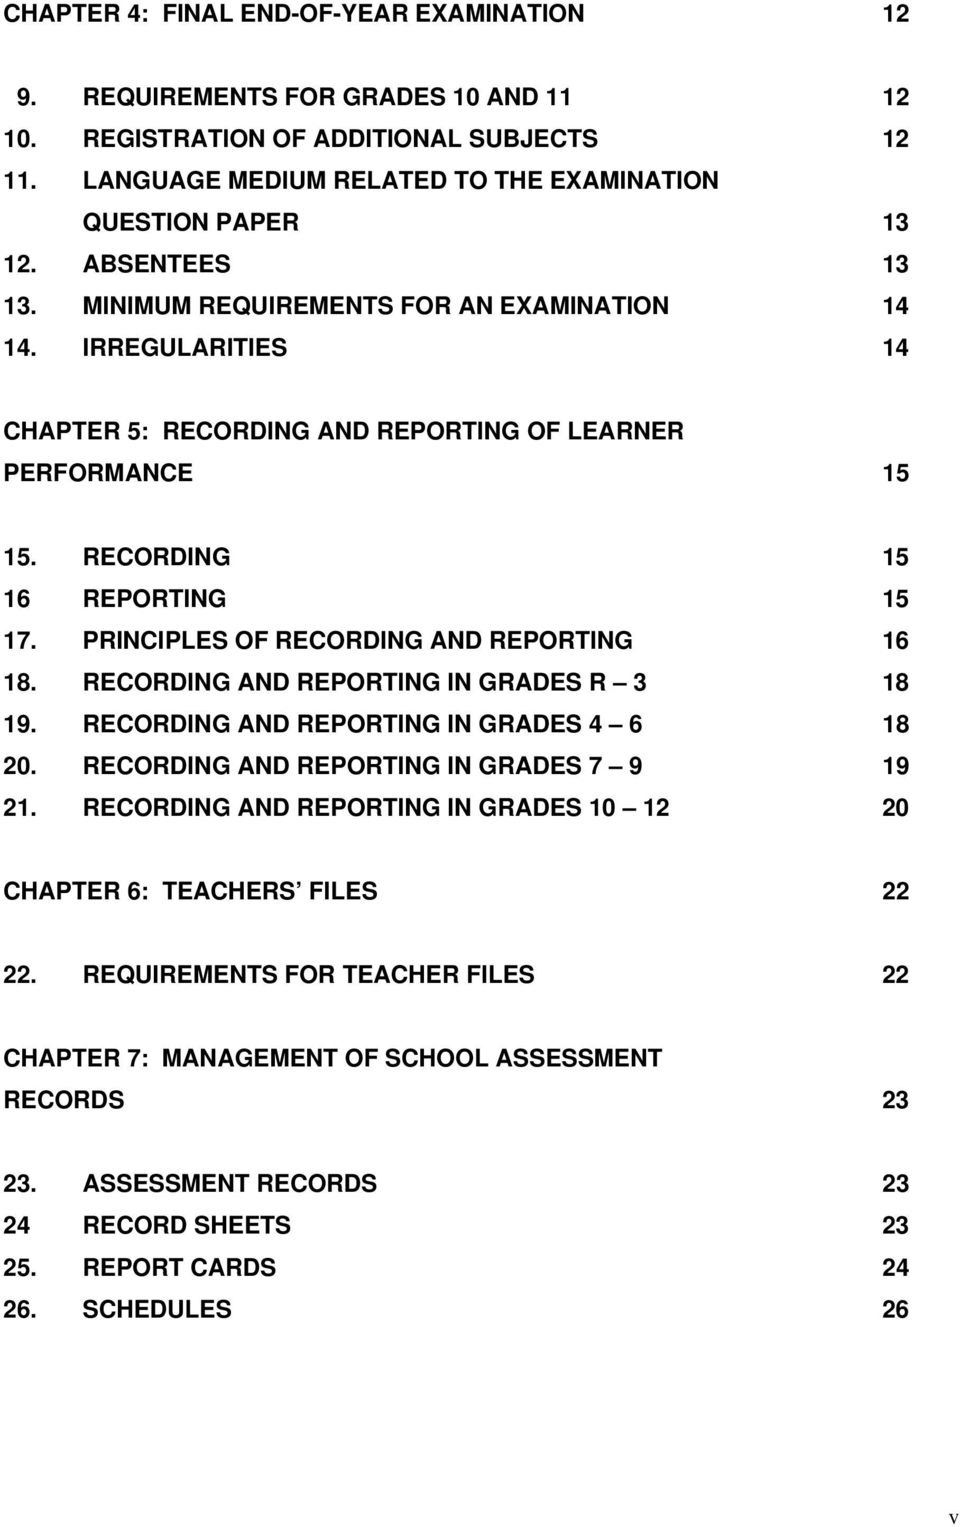 PRINCIPLES OF RECORDING AND REPORTING 16 18. RECORDING AND REPORTING IN GRADES R 3 18 19. RECORDING AND REPORTING IN GRADES 4 6 18 20. RECORDING AND REPORTING IN GRADES 7 9 19 21.